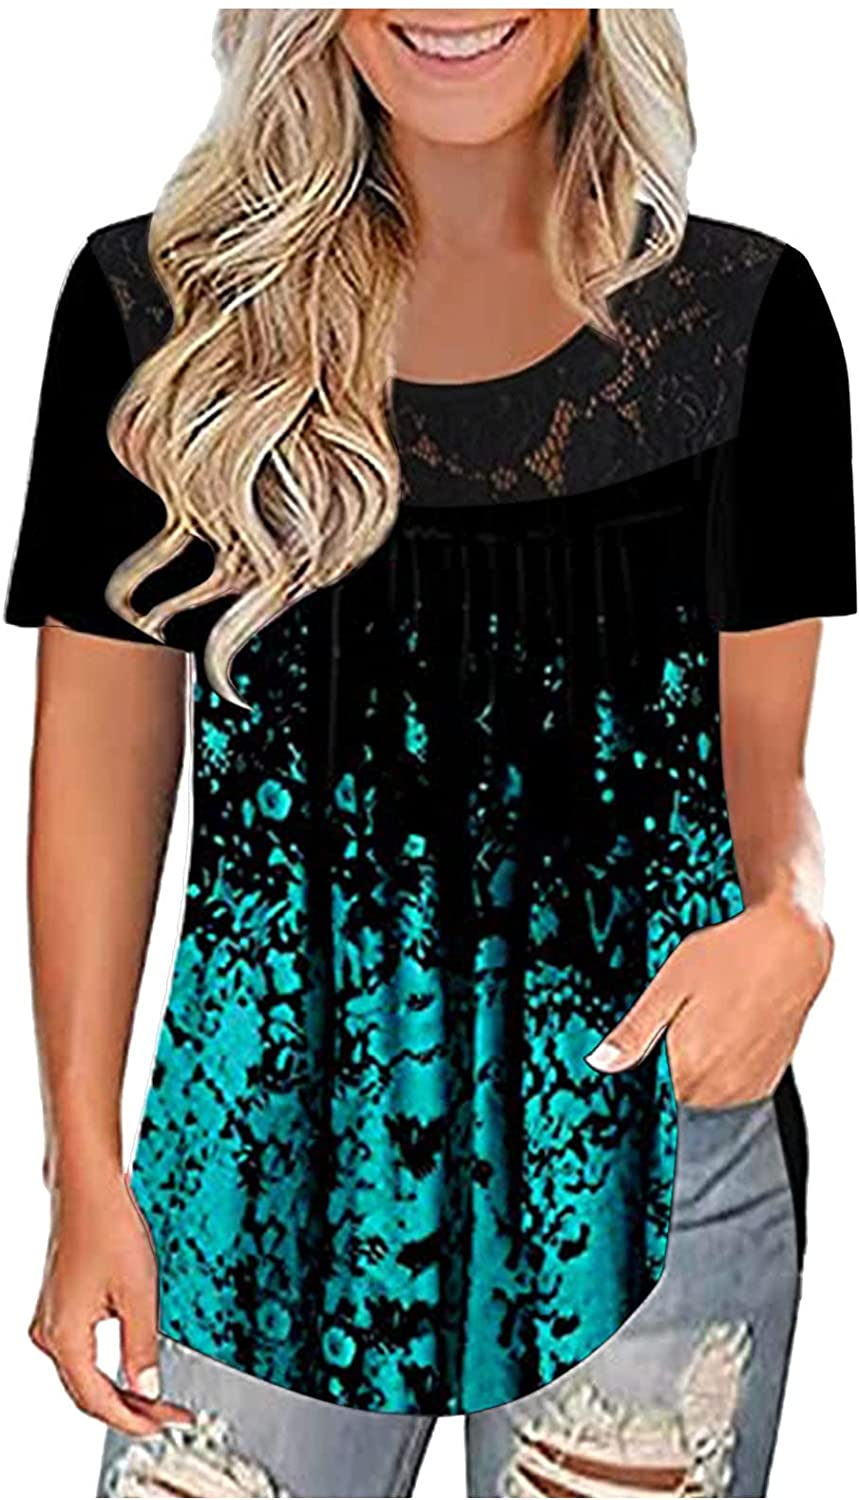 Plus Size Factory outlet Summer Tops for Sale Special Price Women Pleated Casual Pri Lace Splicing